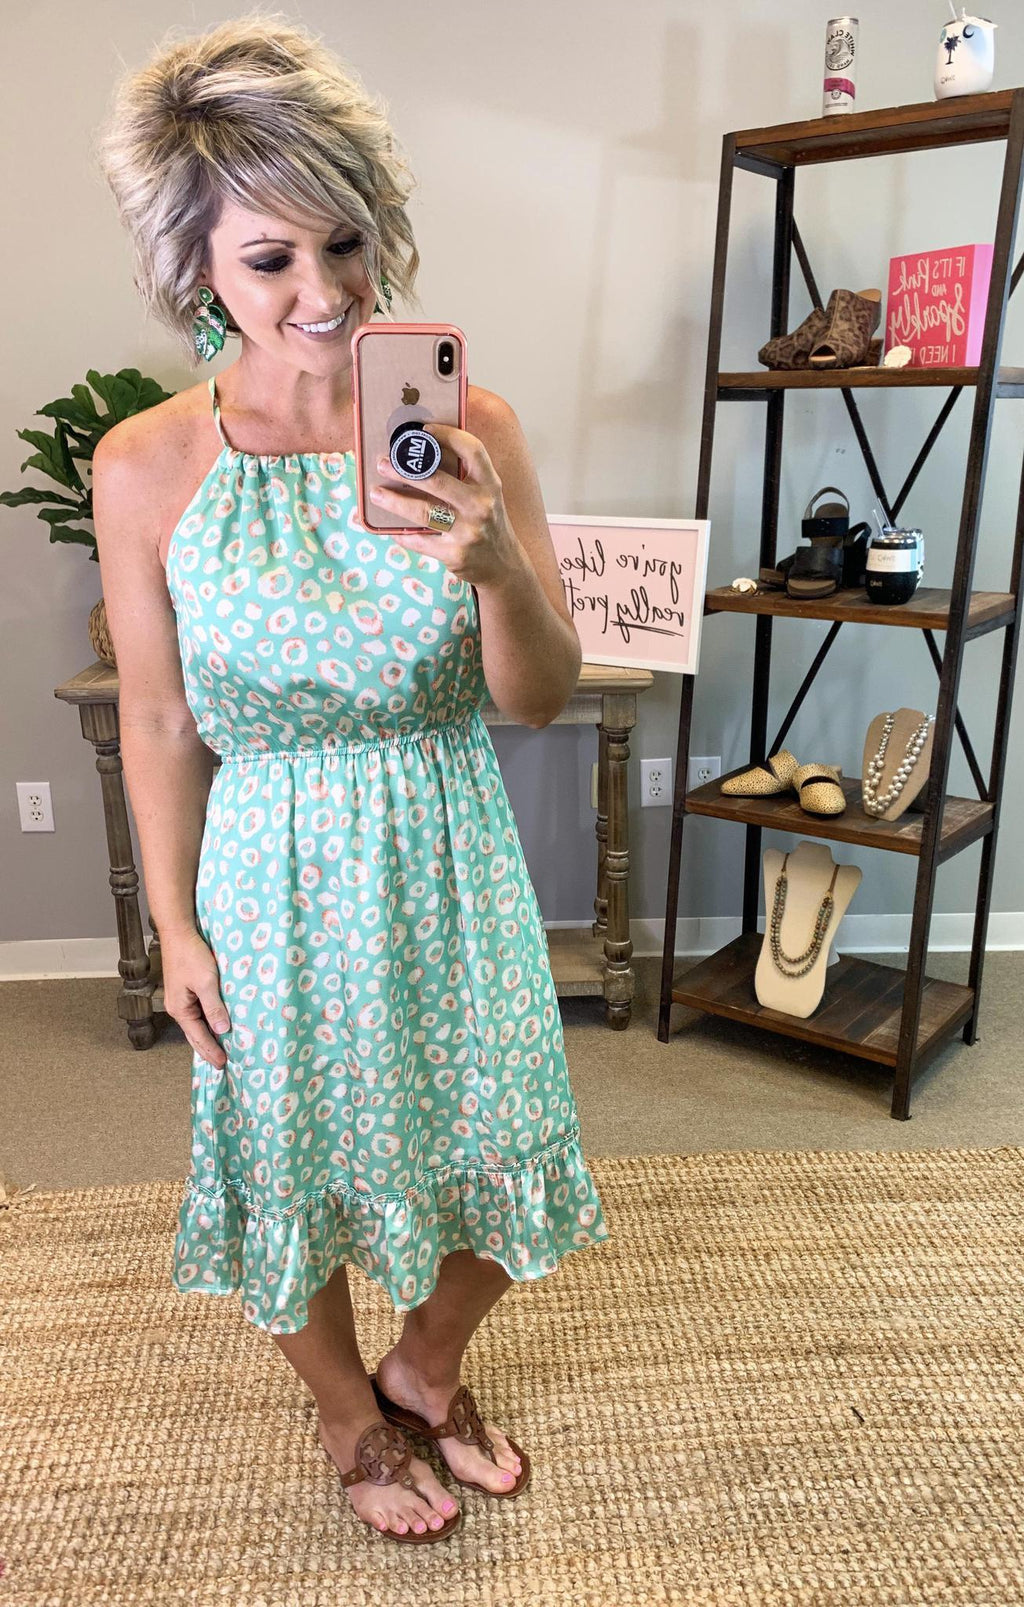 Ready For You Leopard Dress - Preppy Pineapple